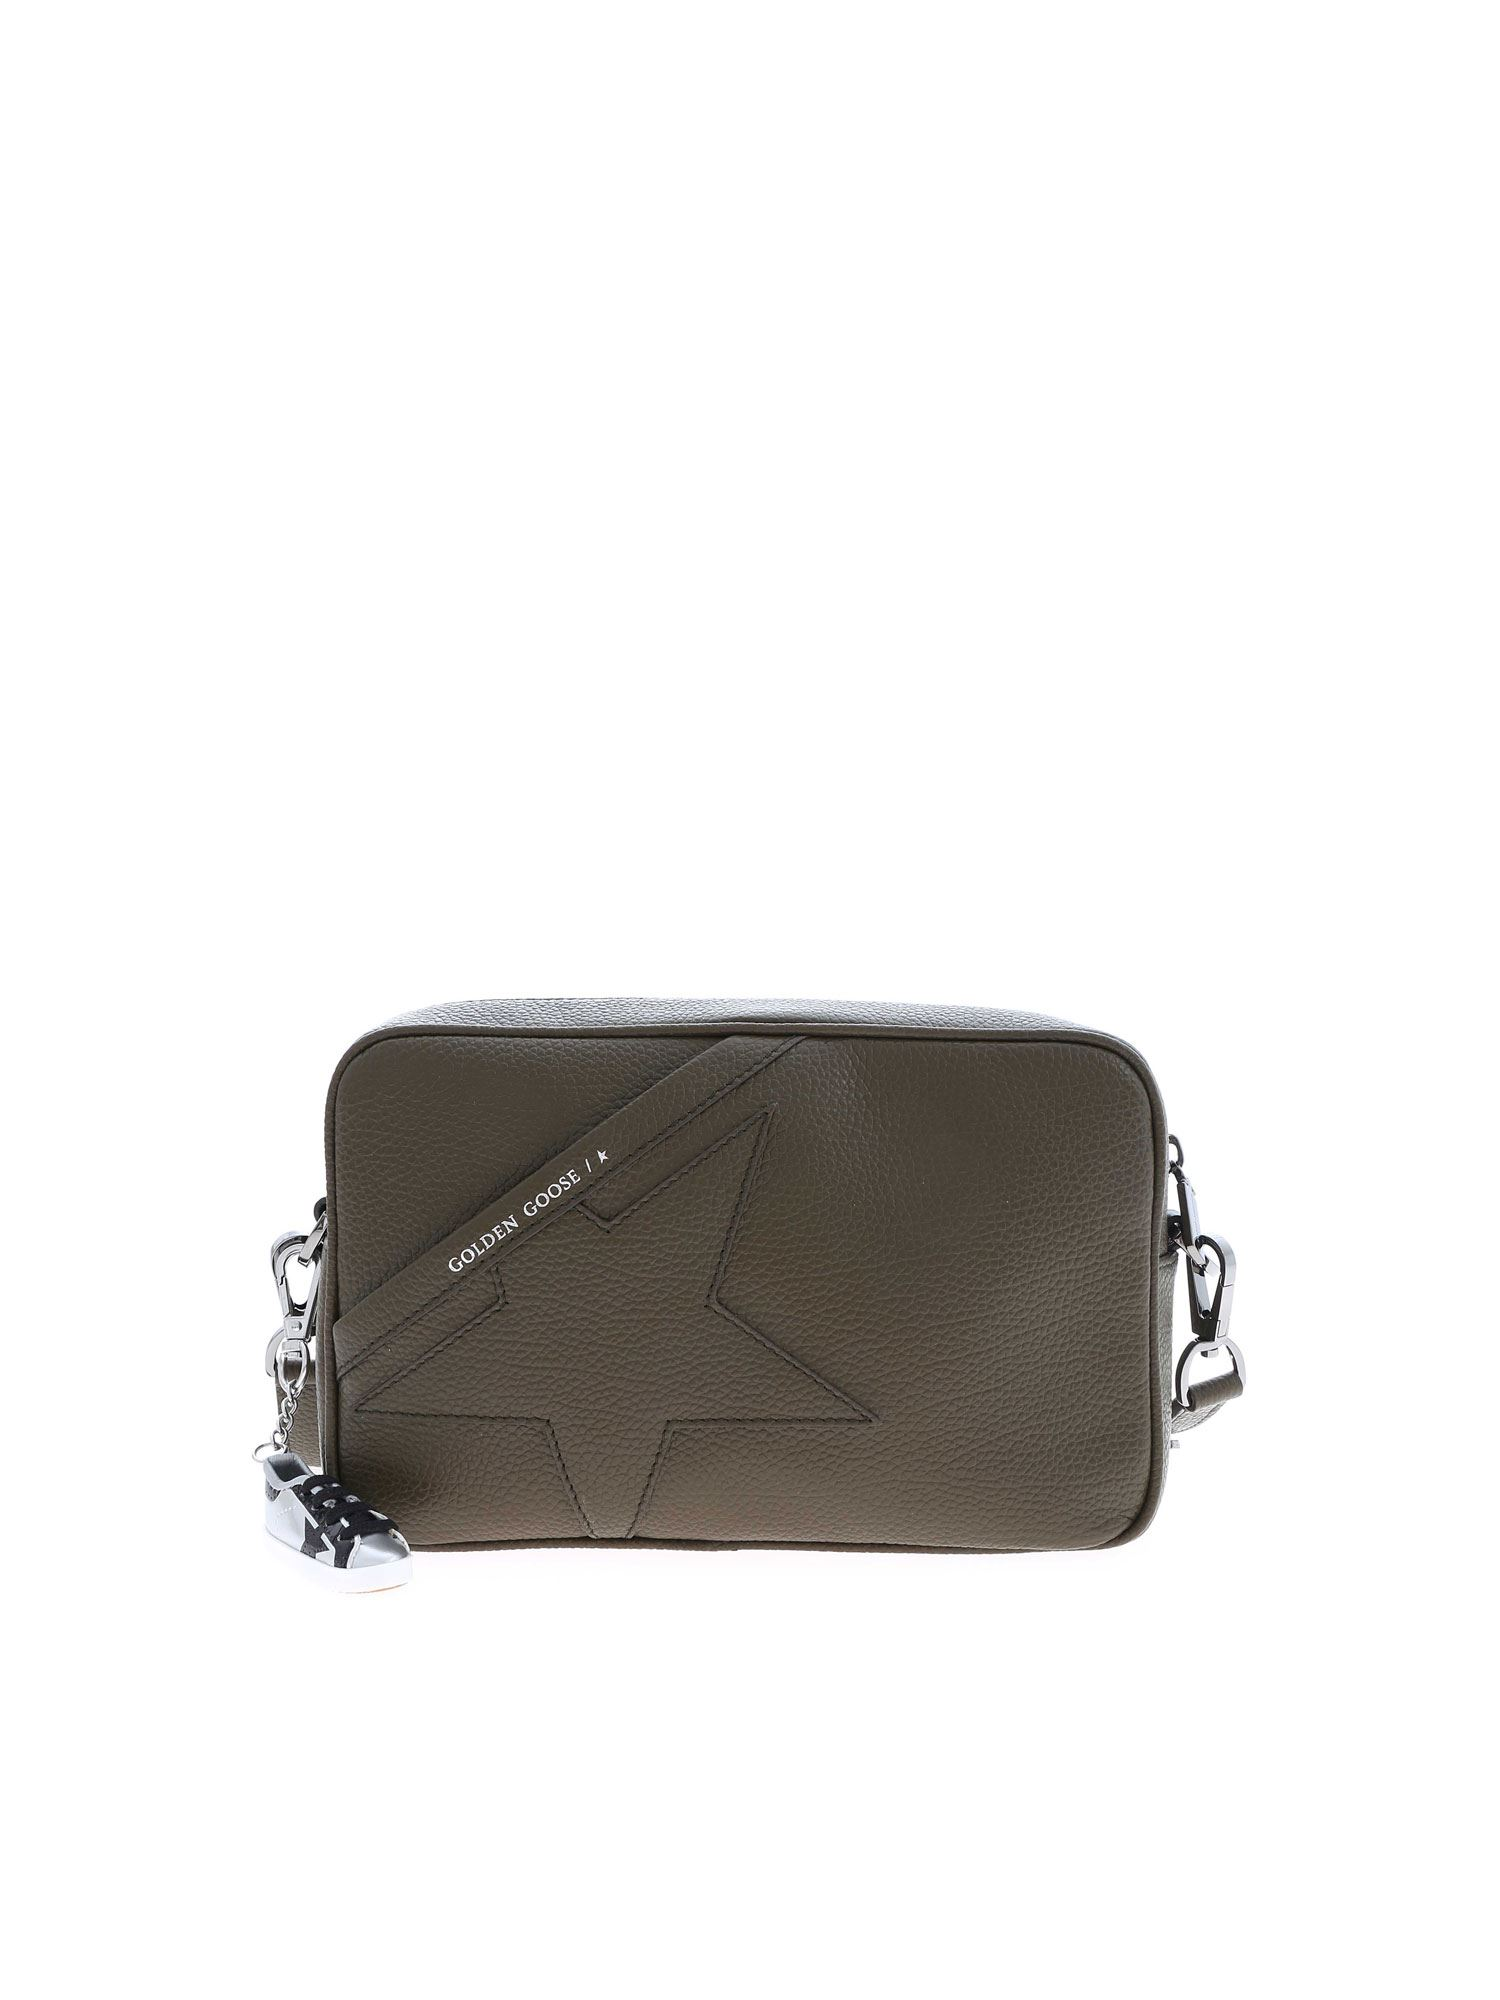 Golden Goose STAR SHOULDER BAG IN ARMY GREEN